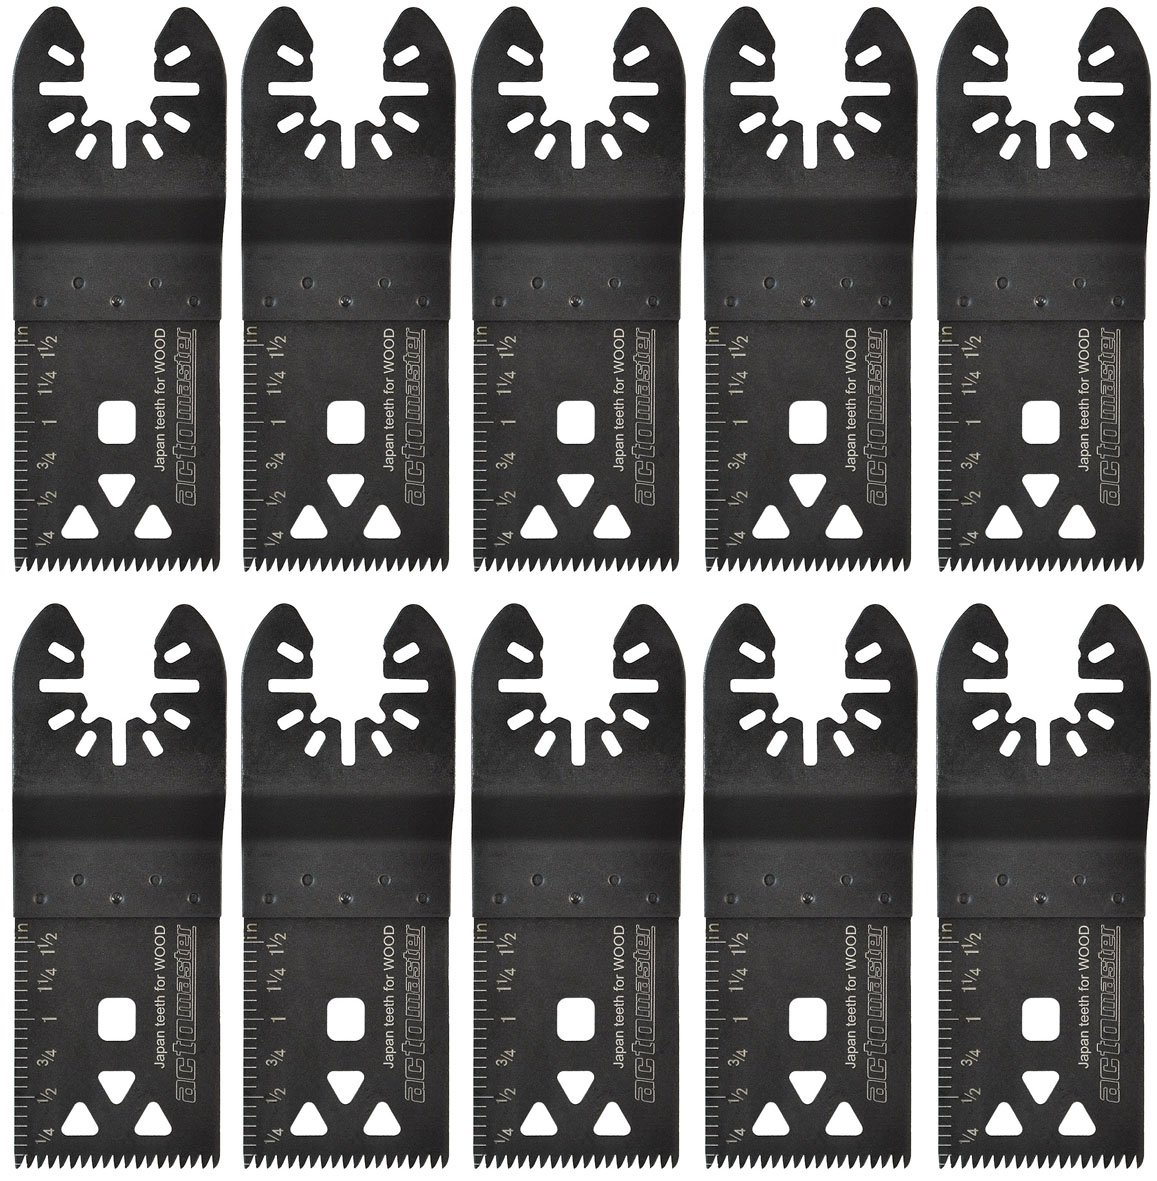 ACTOMASTER Japan Teeth Precise Oscillating Saw Blade for Oscillating Tool Multitool, Pack of 10